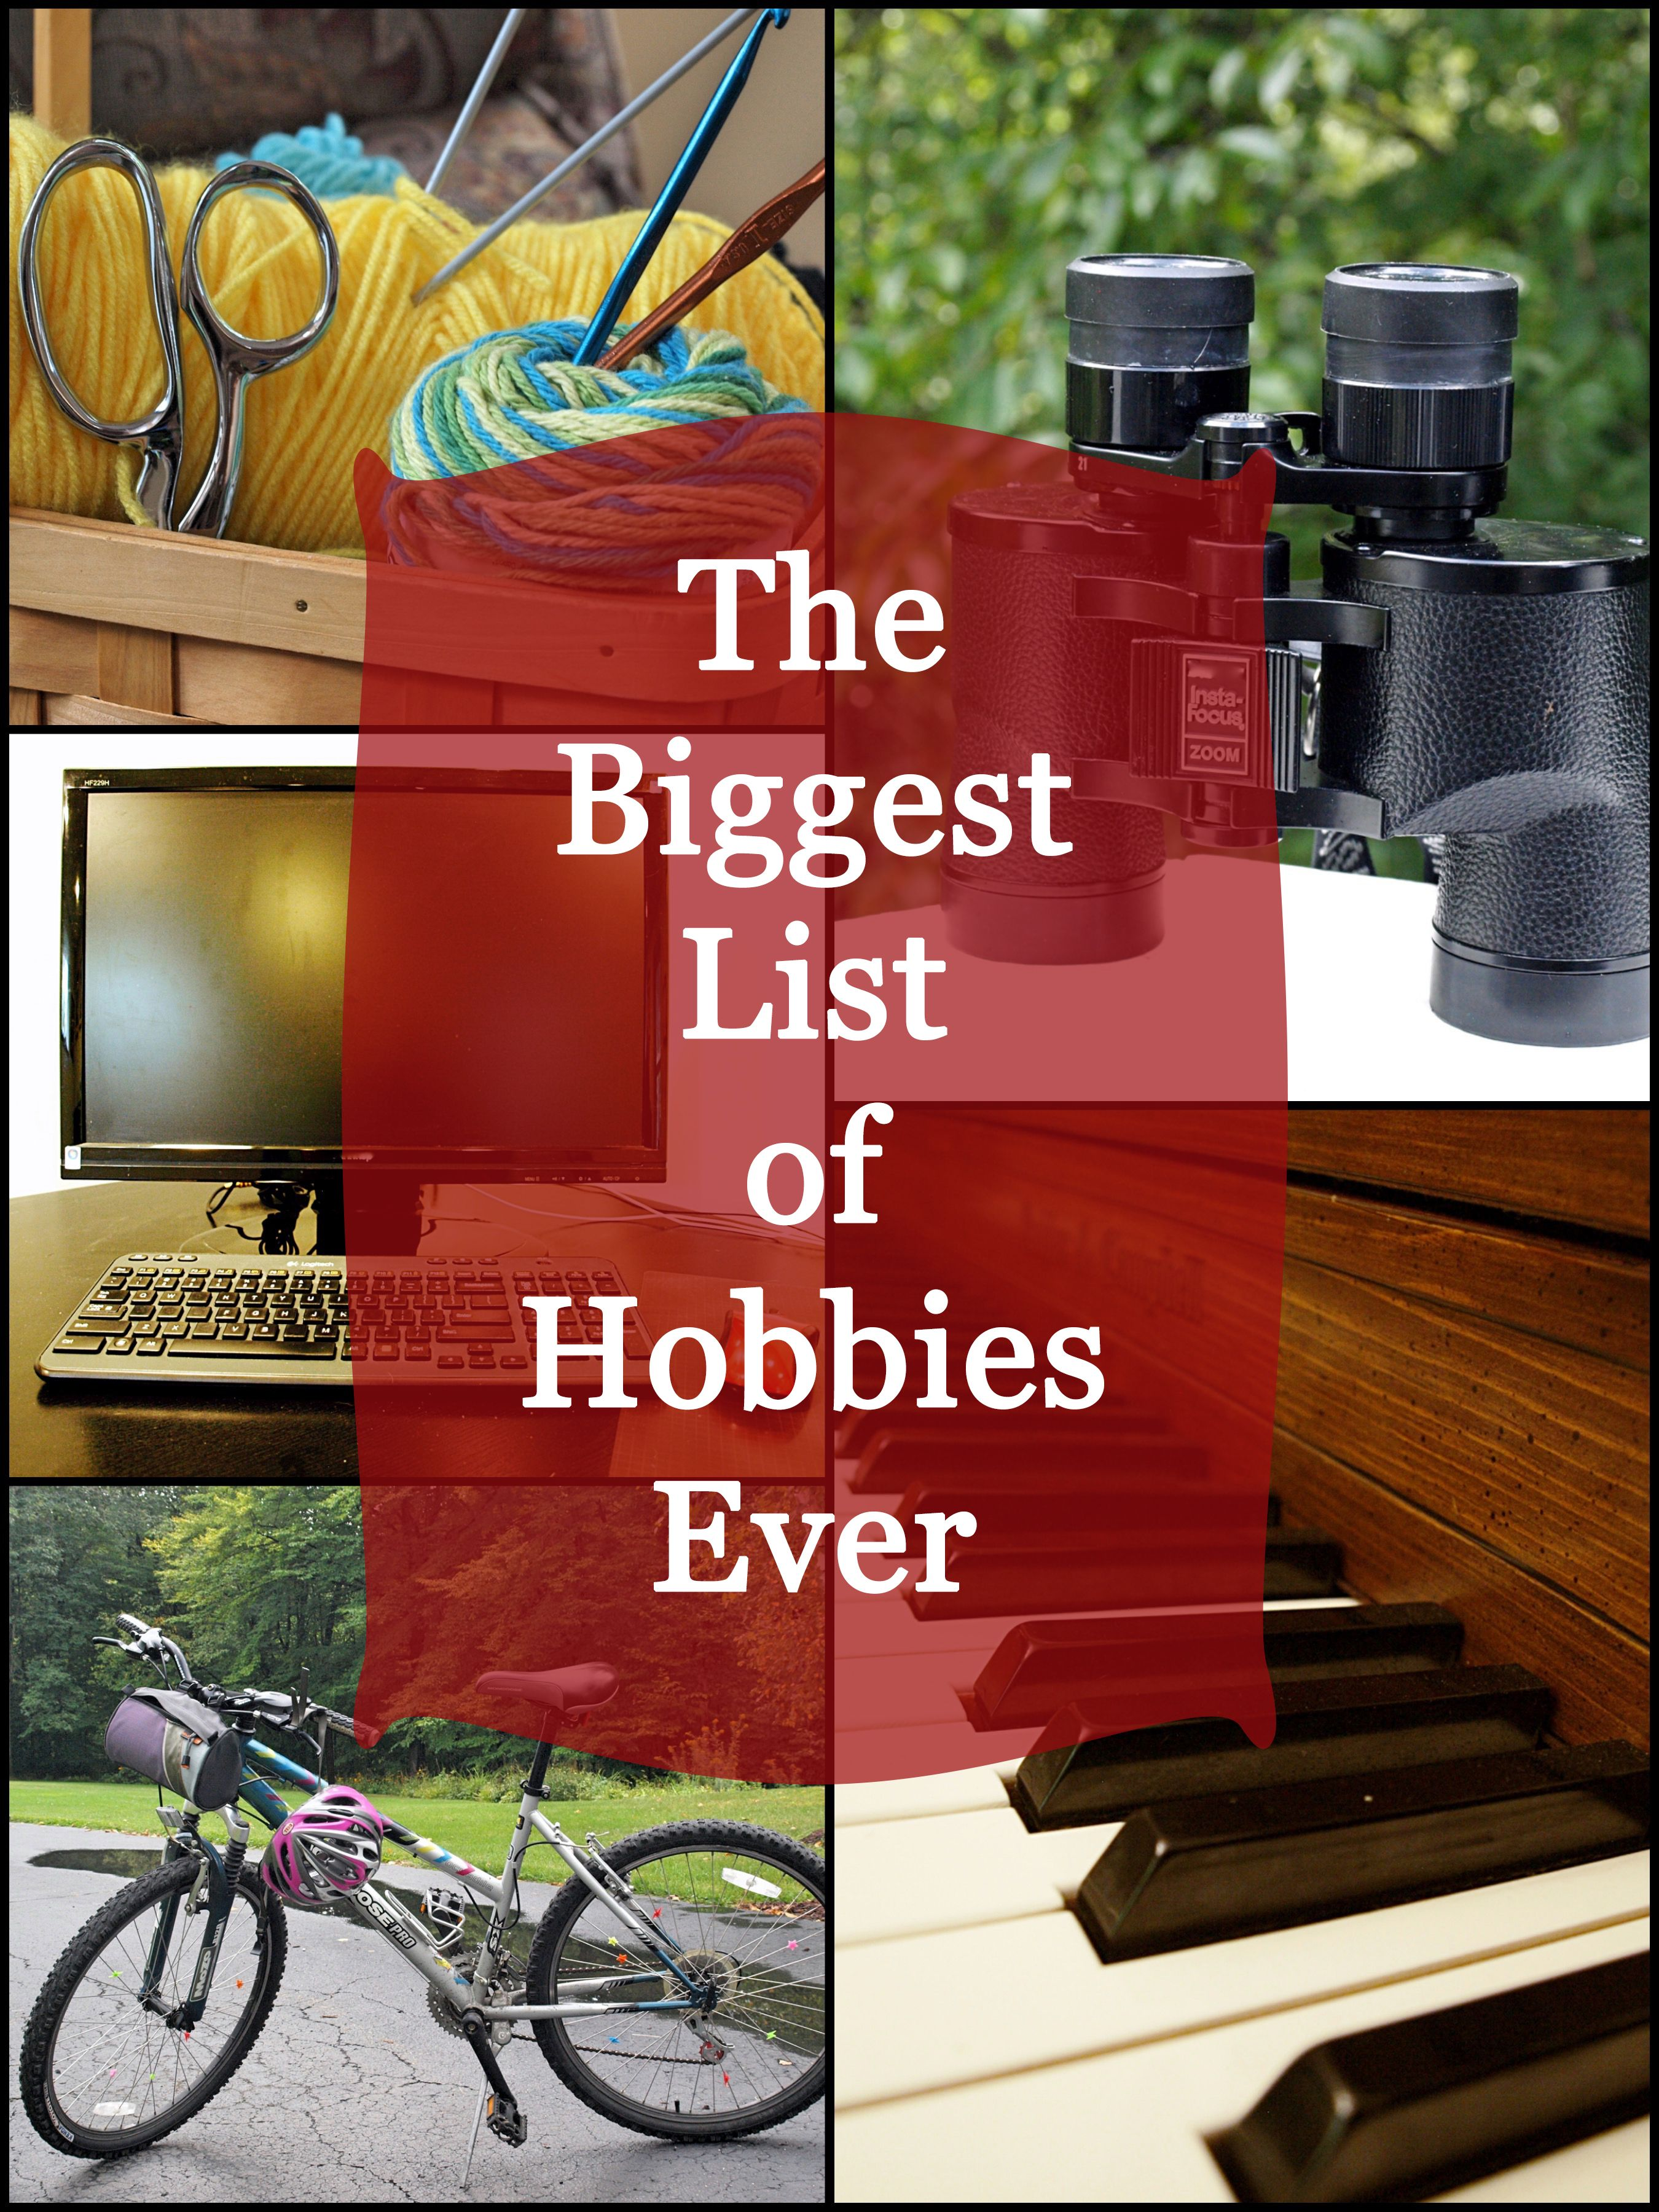 Hobbies, handicrafts: a selection of articles